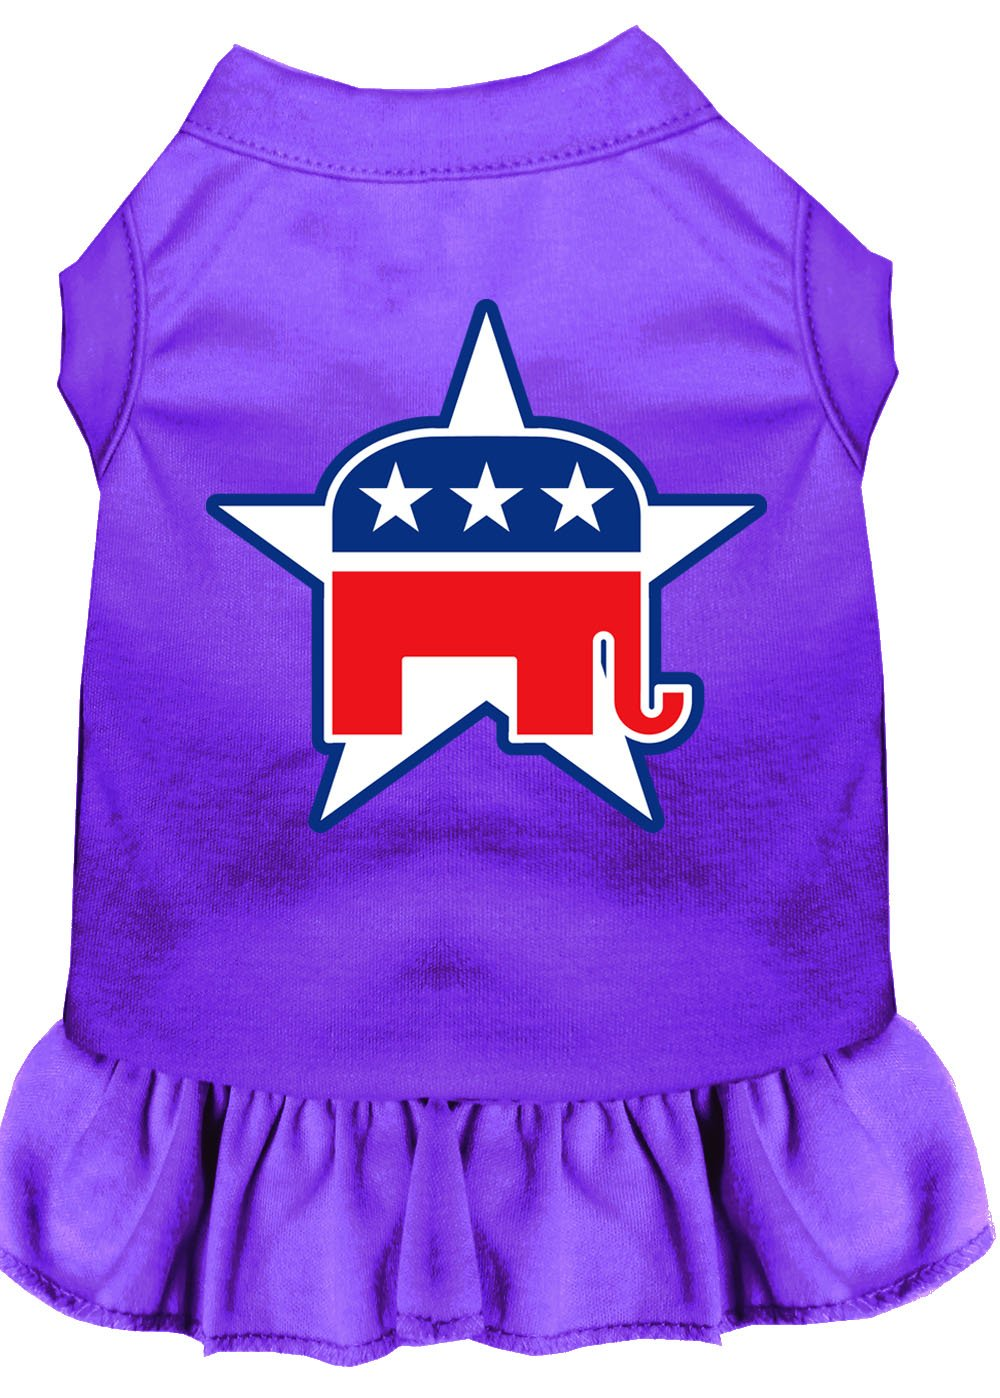 Republican Dog Dress Outfits purple